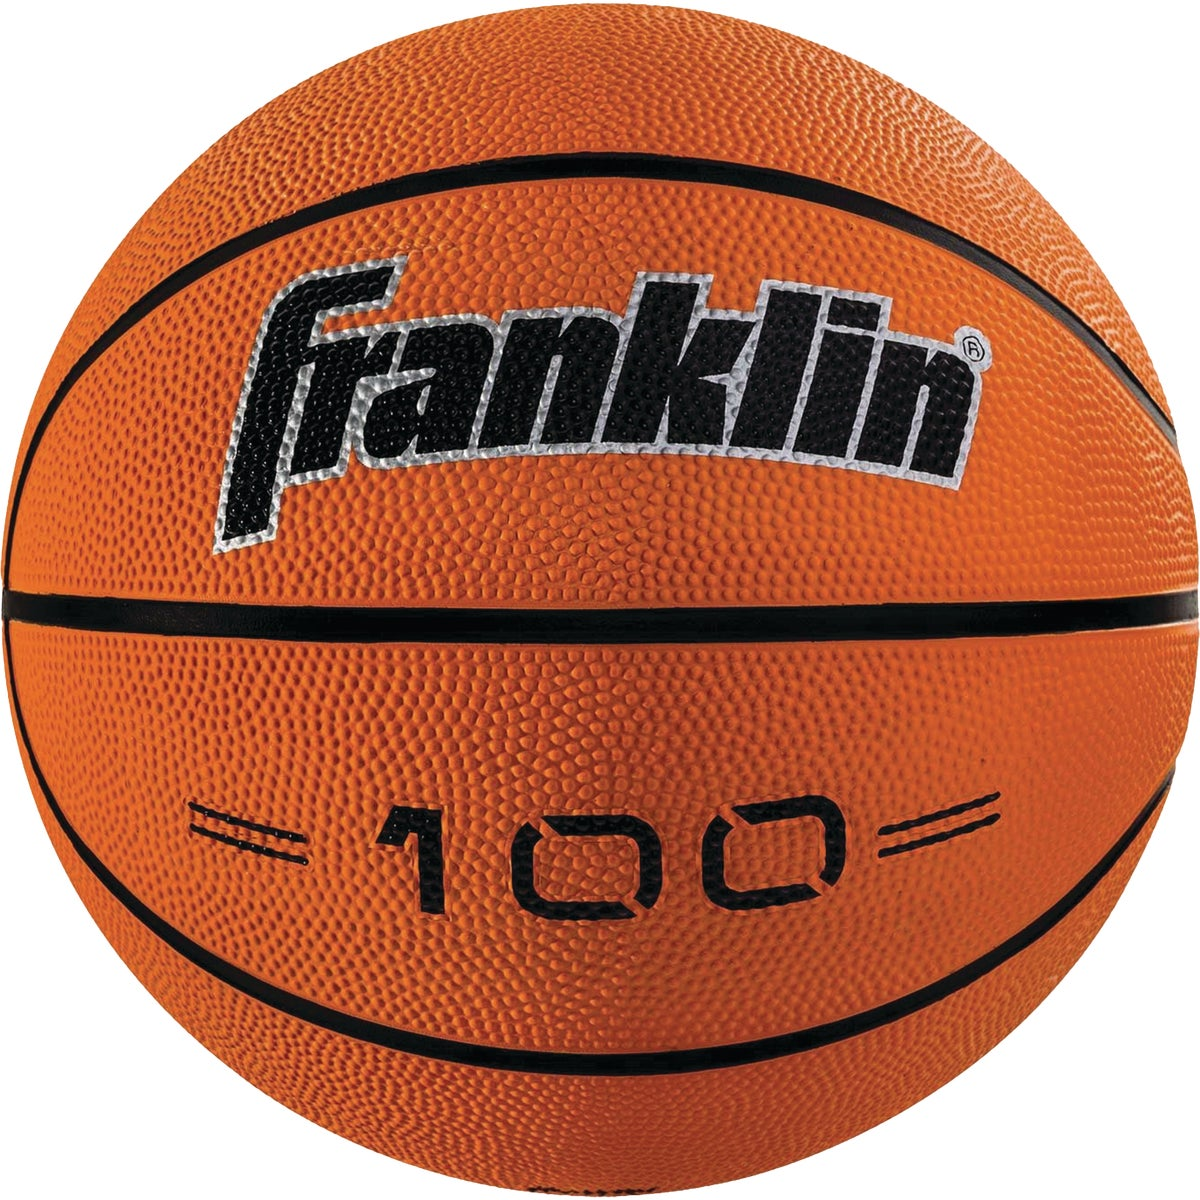 29.5 TIP-UP BASKETBALL